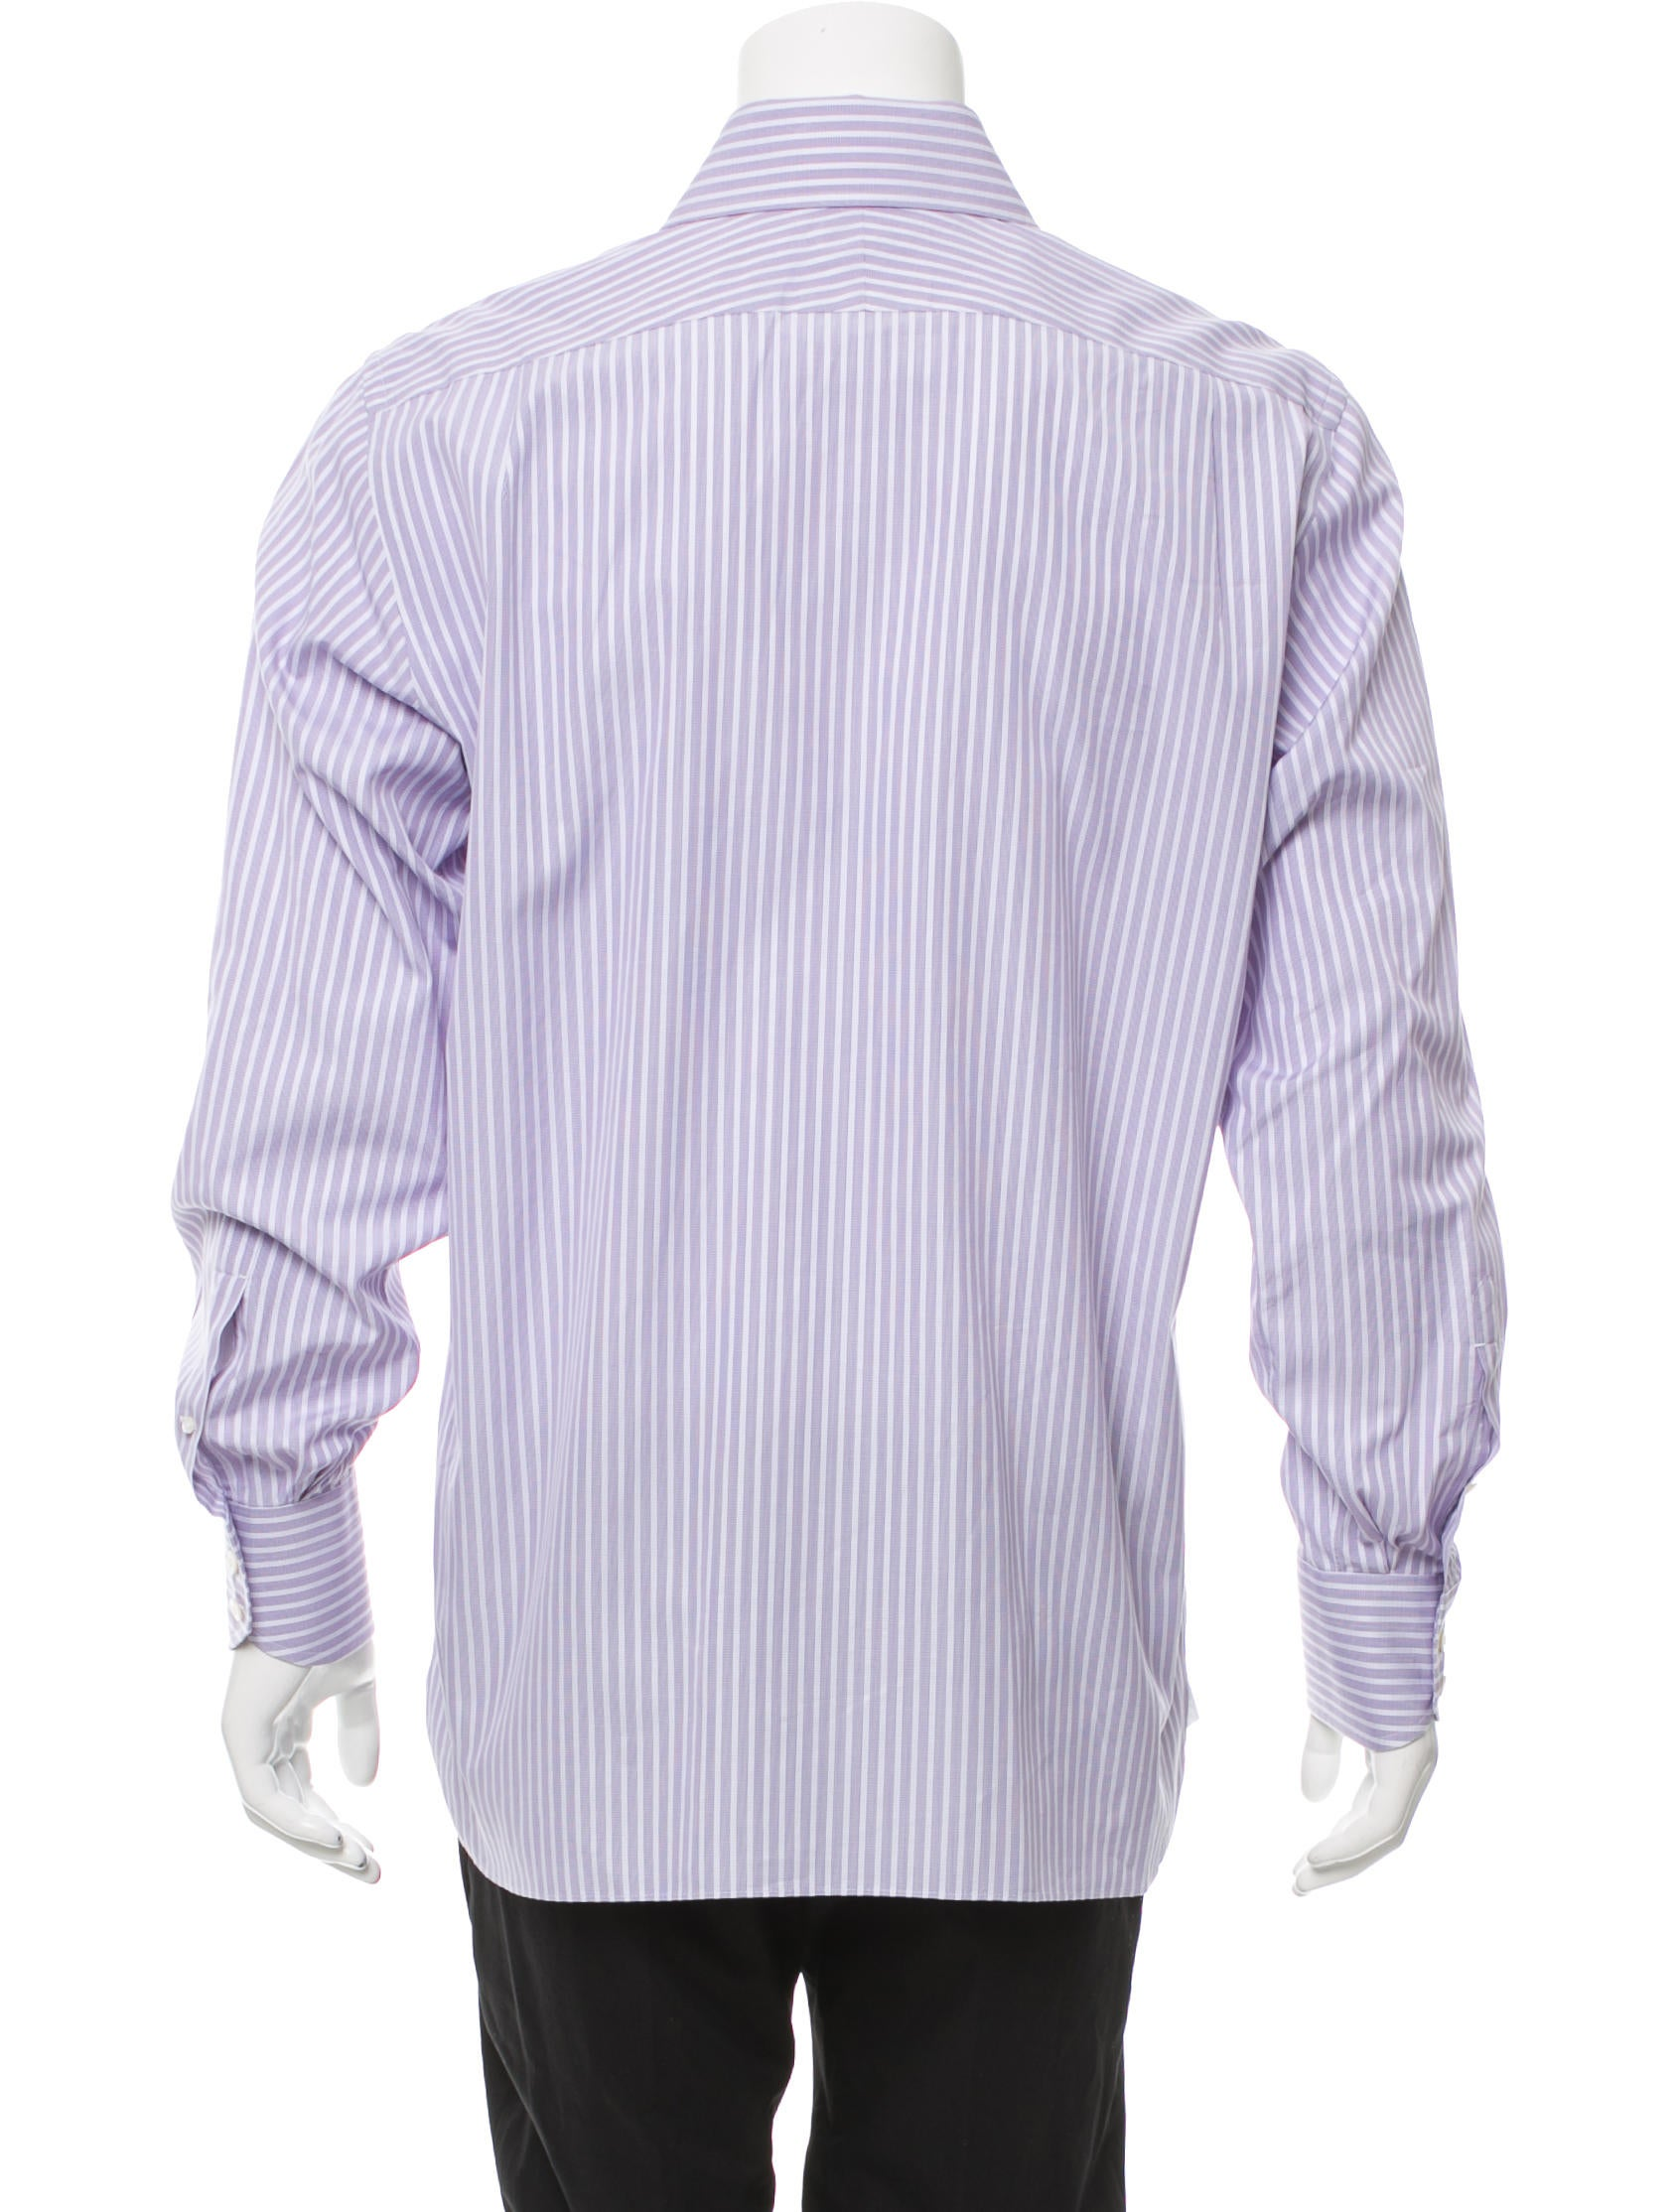 Tom ford striped button up shirt clothing tom34137 for Striped button up shirt mens